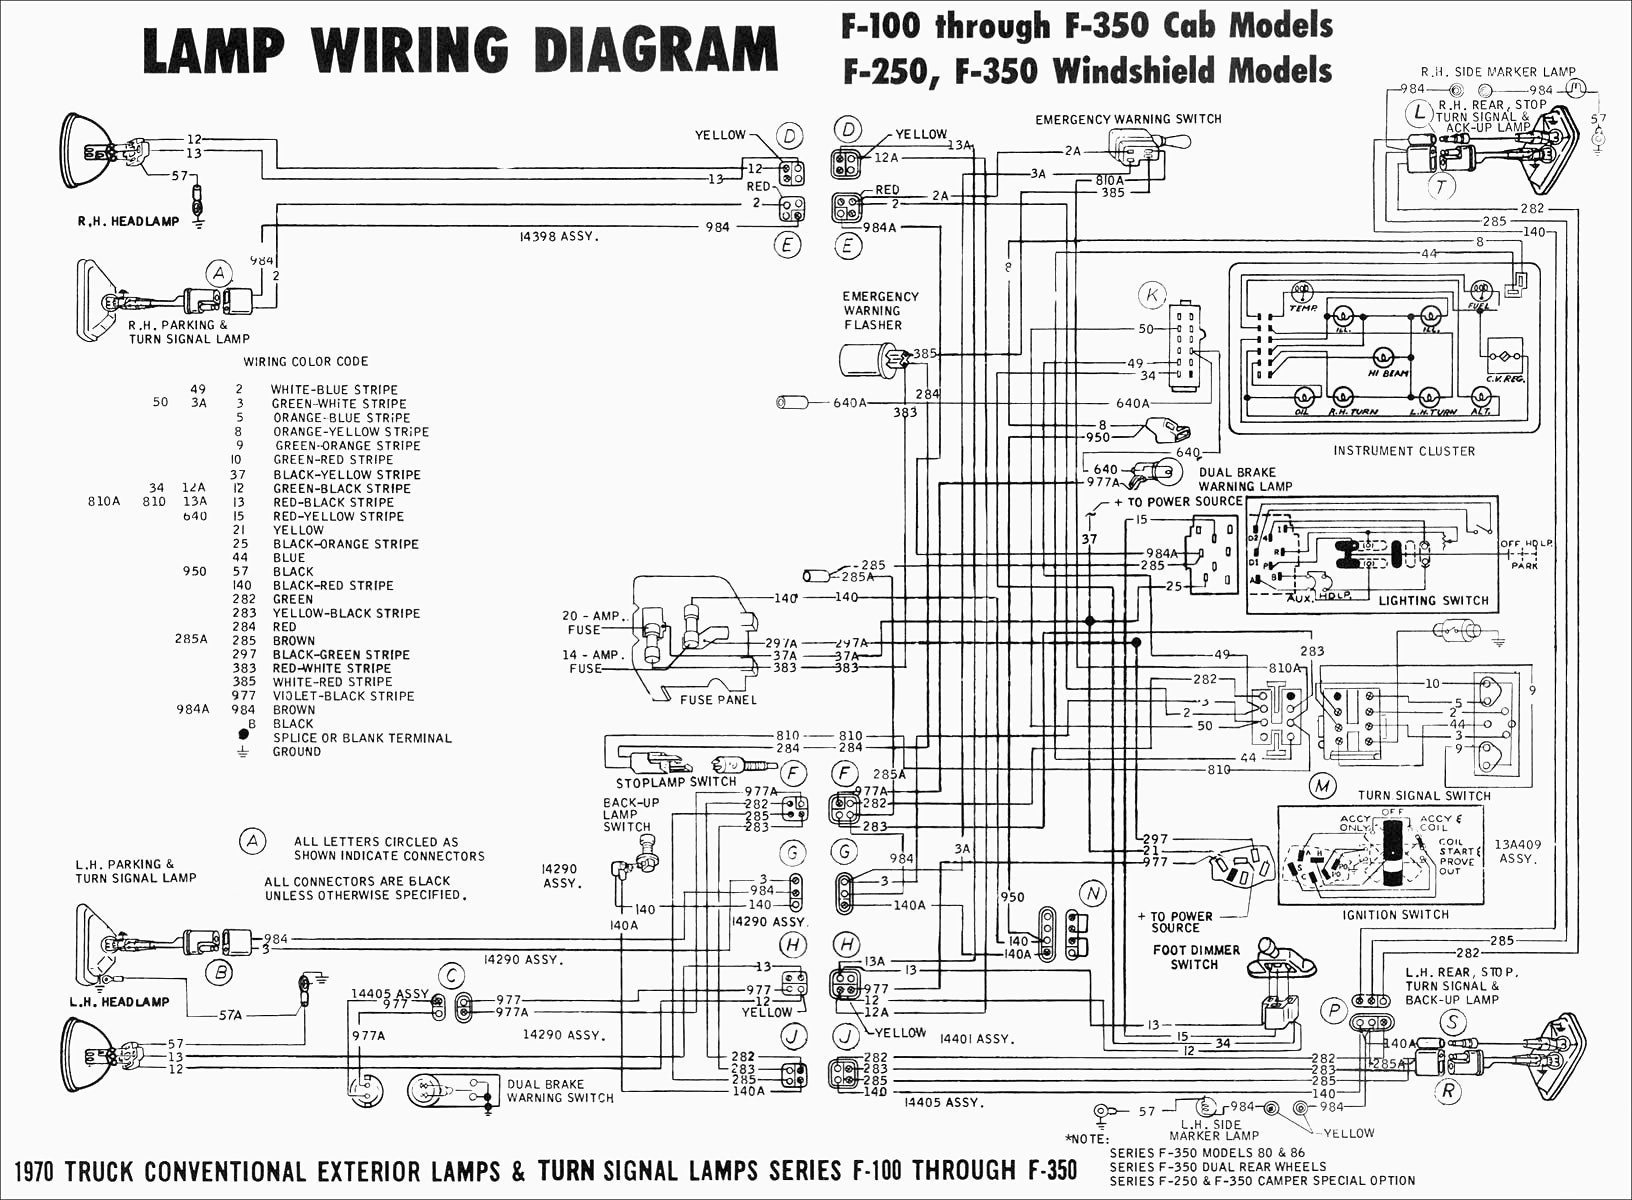 Trailer Wiring For Jeep Cherokee from wholefoodsonabudget.com